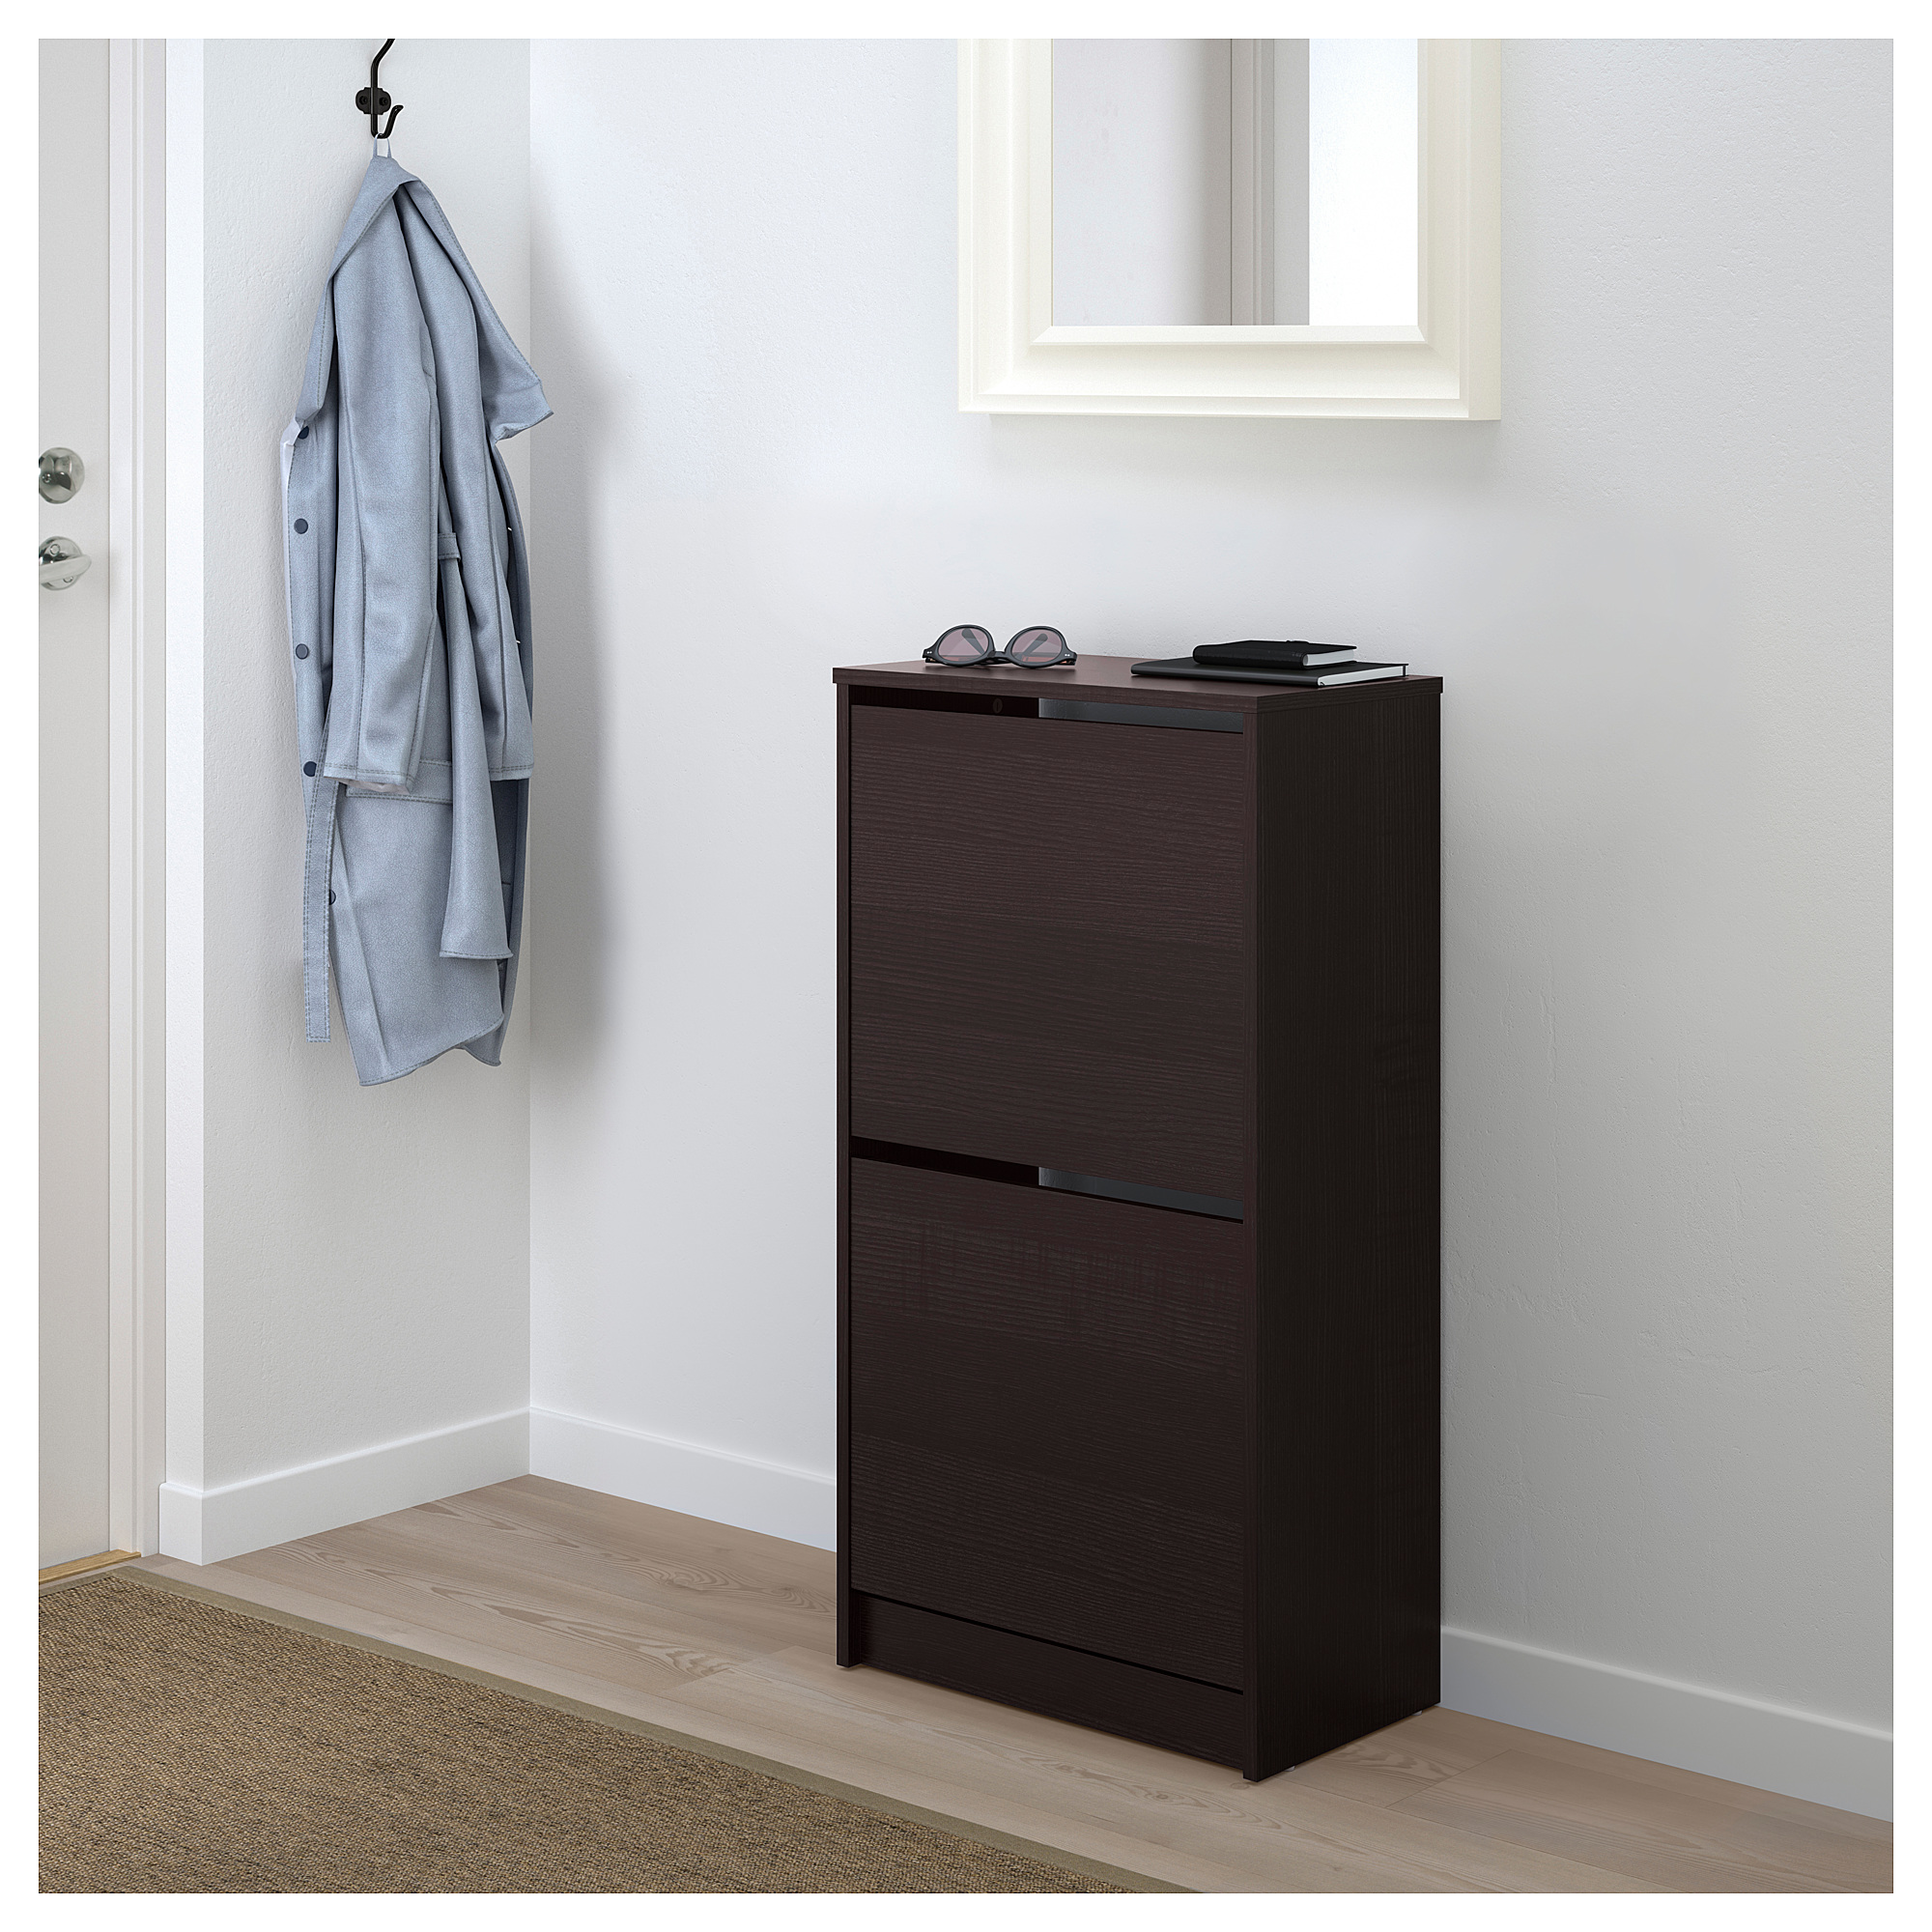 Bissa Shoe Cabinet With 2 Compartments Black Brown 19 1 4x36 5